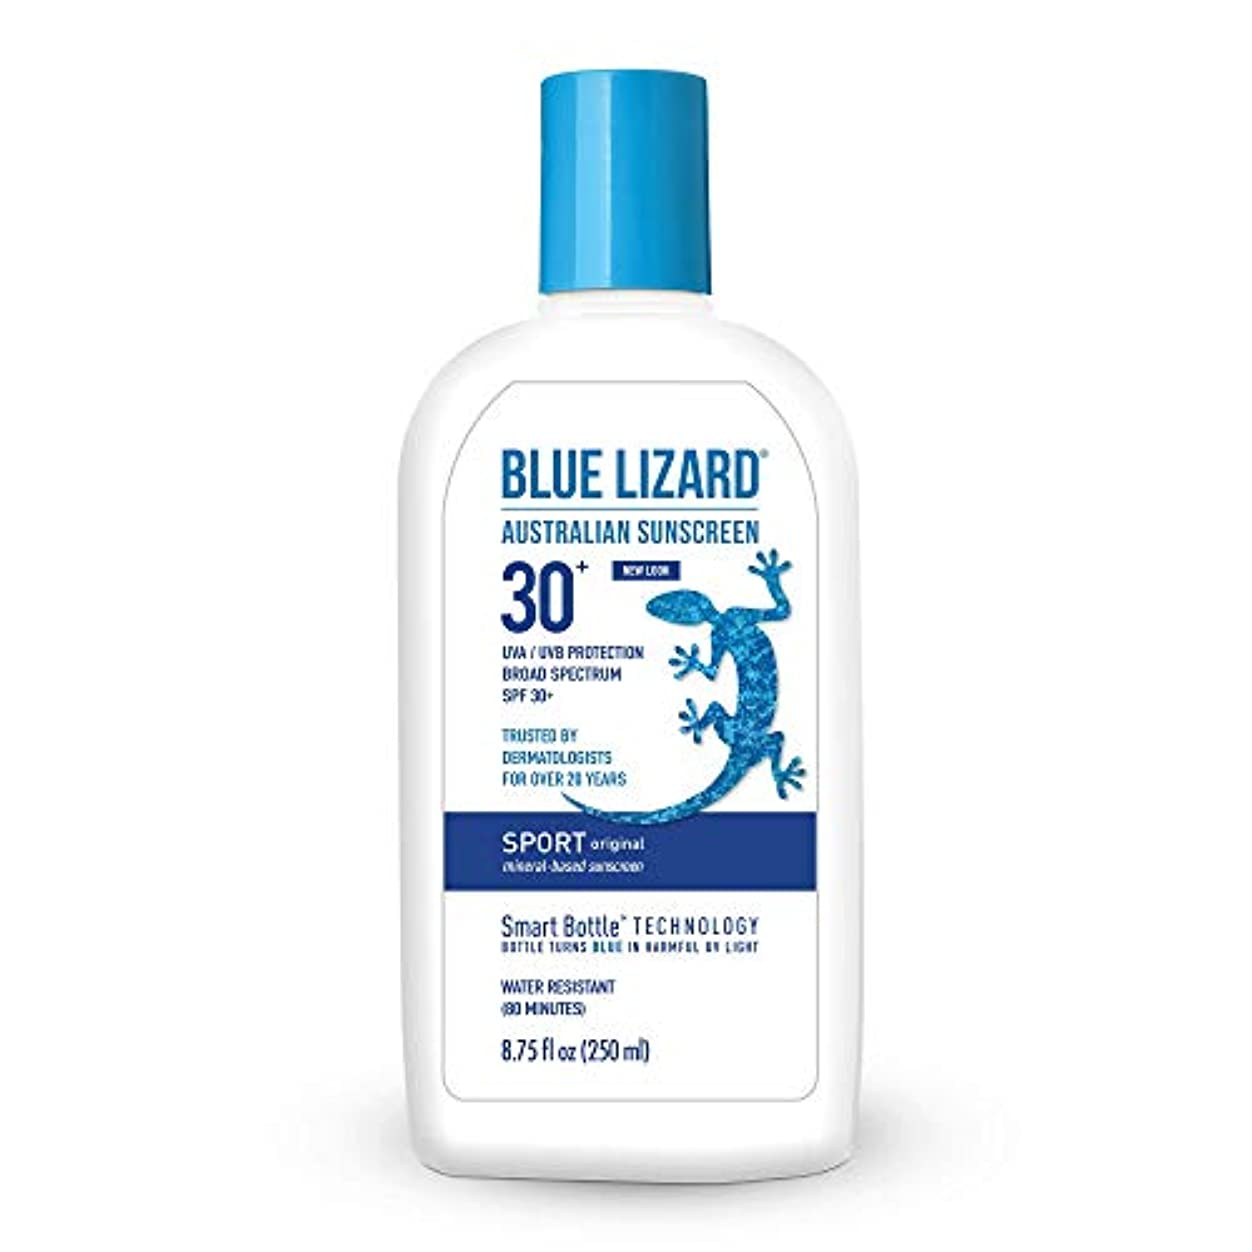 休日サイトライン黄ばむBlue Lizard Australian SUNSCREEN SPF 30+, Sport SPF 30+ (8.75 oz) by Blue Lizard